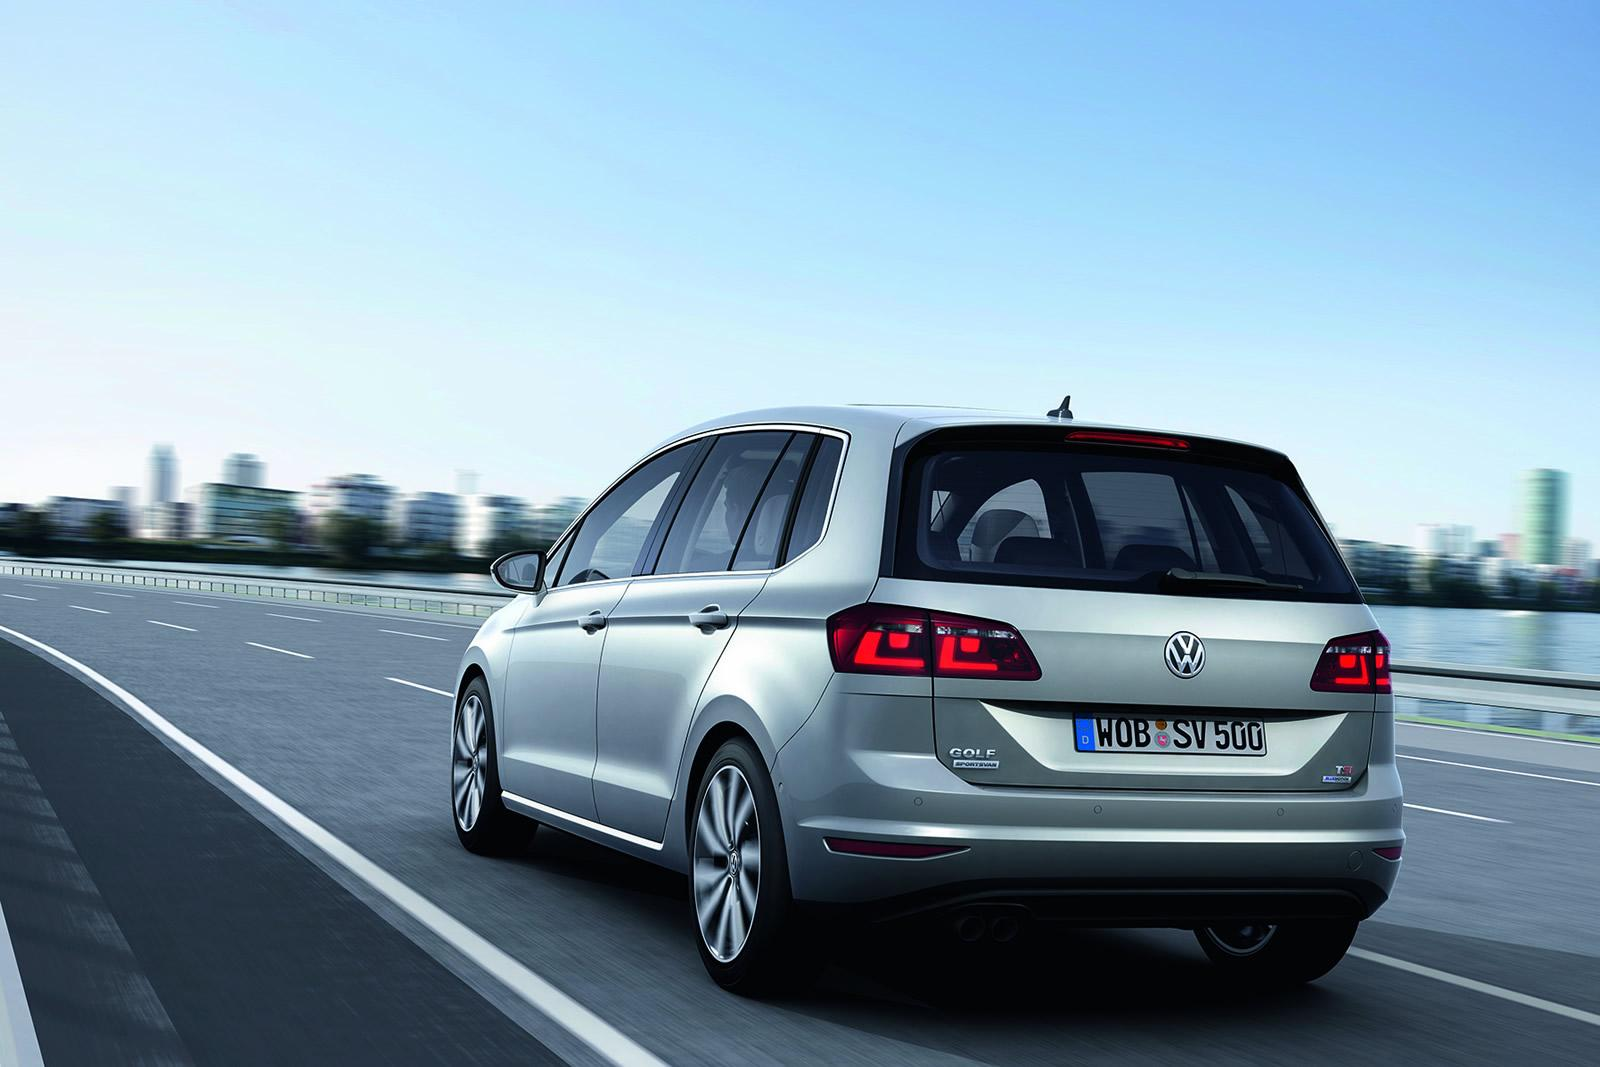 VW Golf Sportsvan Concept Unveiled, Is Actually the Golf Plus - autoevolution